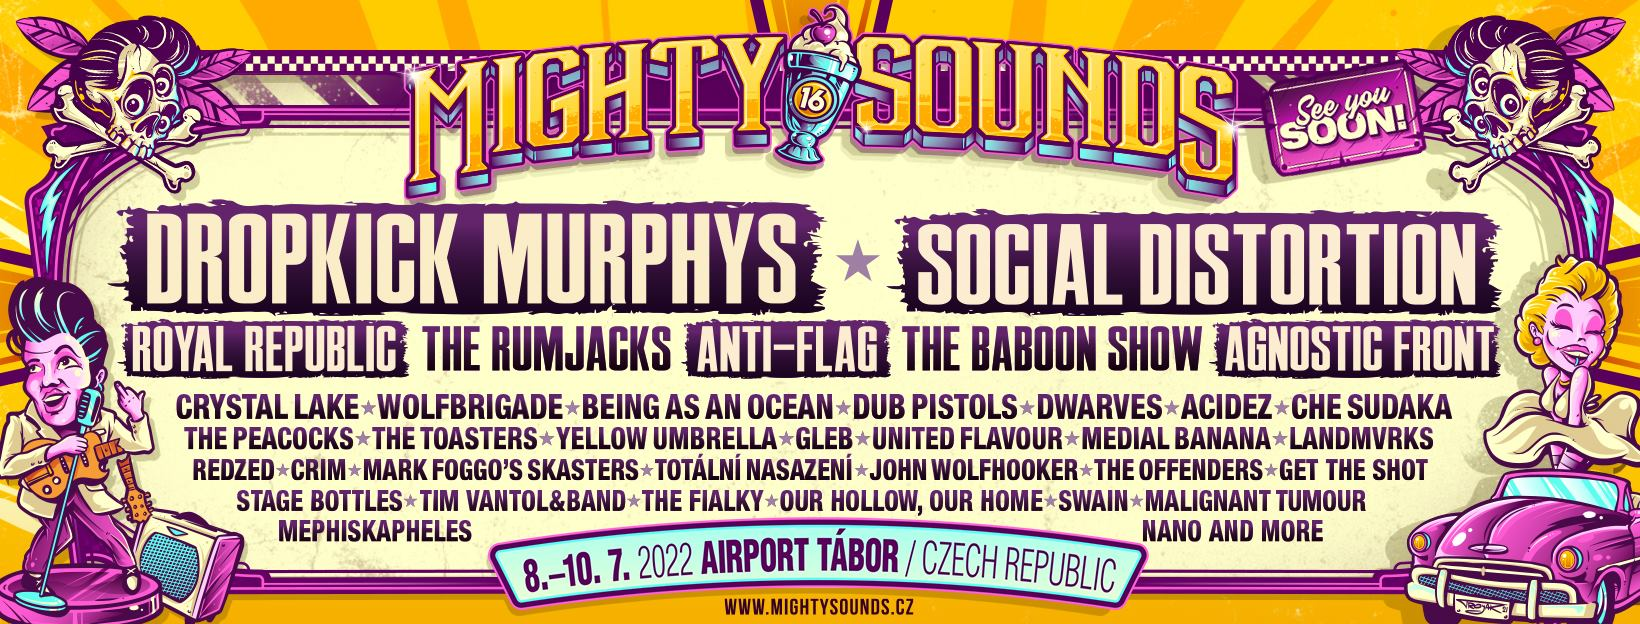 Mighty Sounds 2022 mit erster Bandwelle